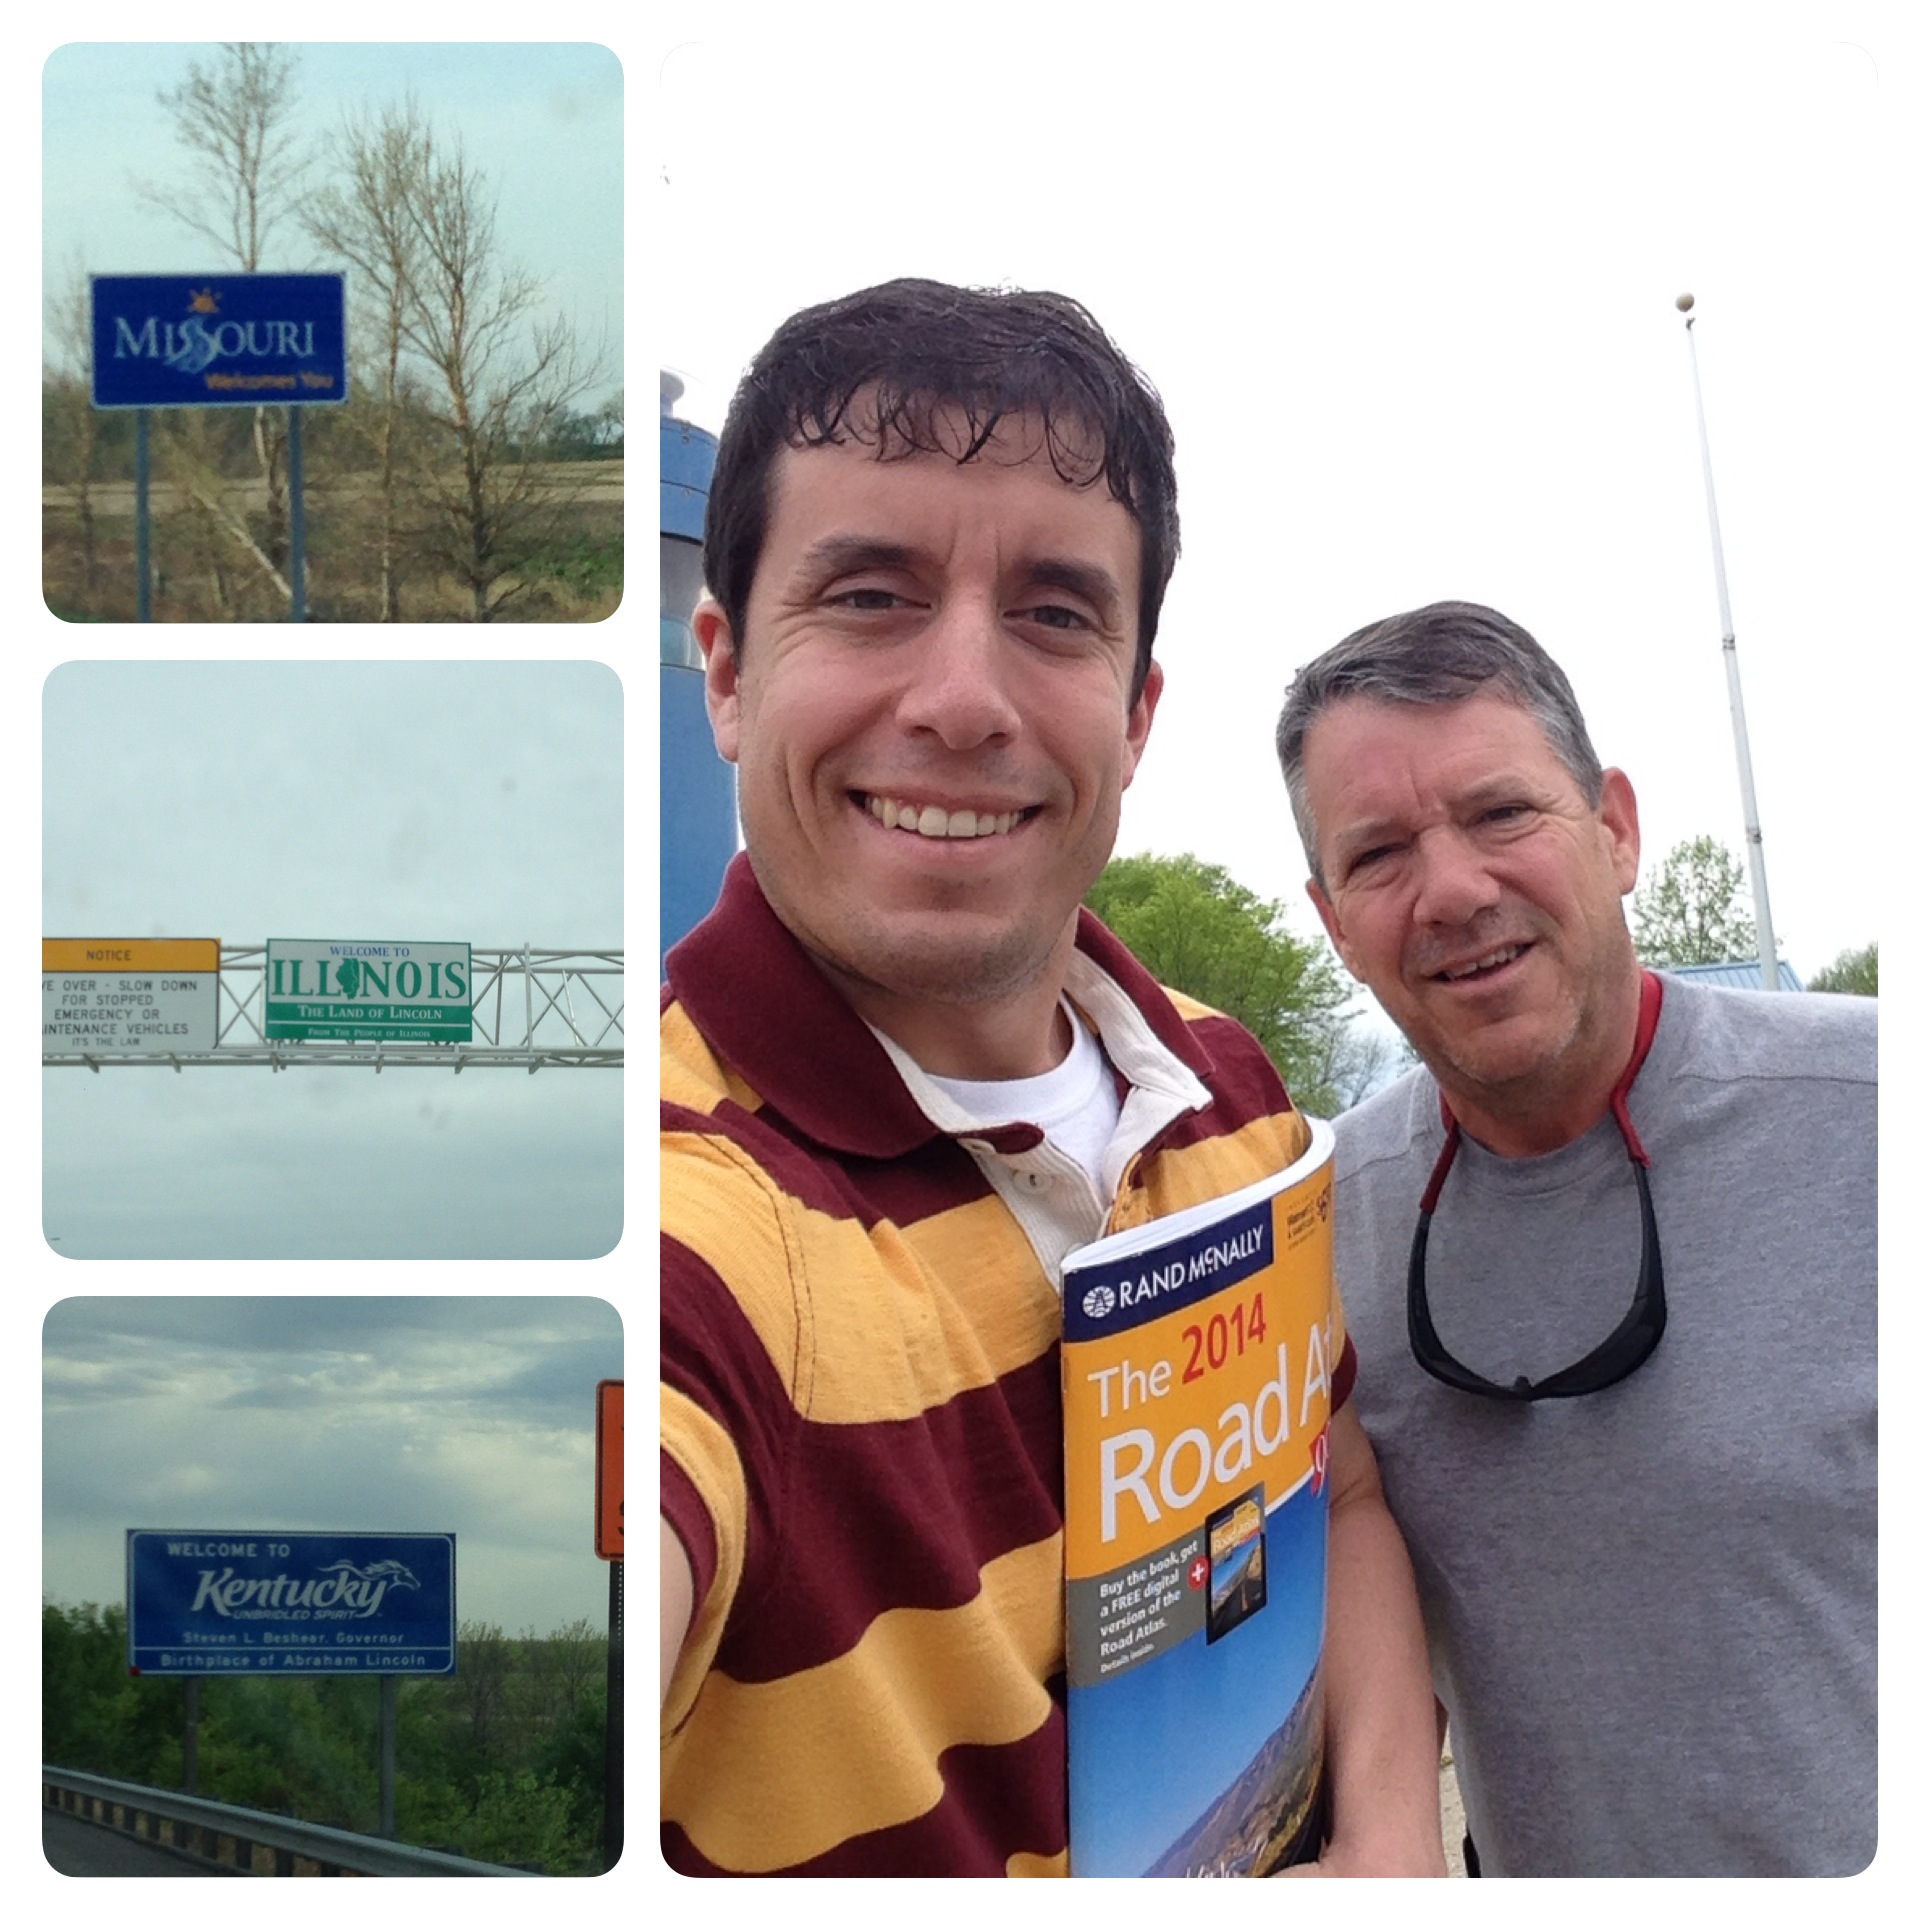 My dad and I had a GREAT day on the road going through four states.